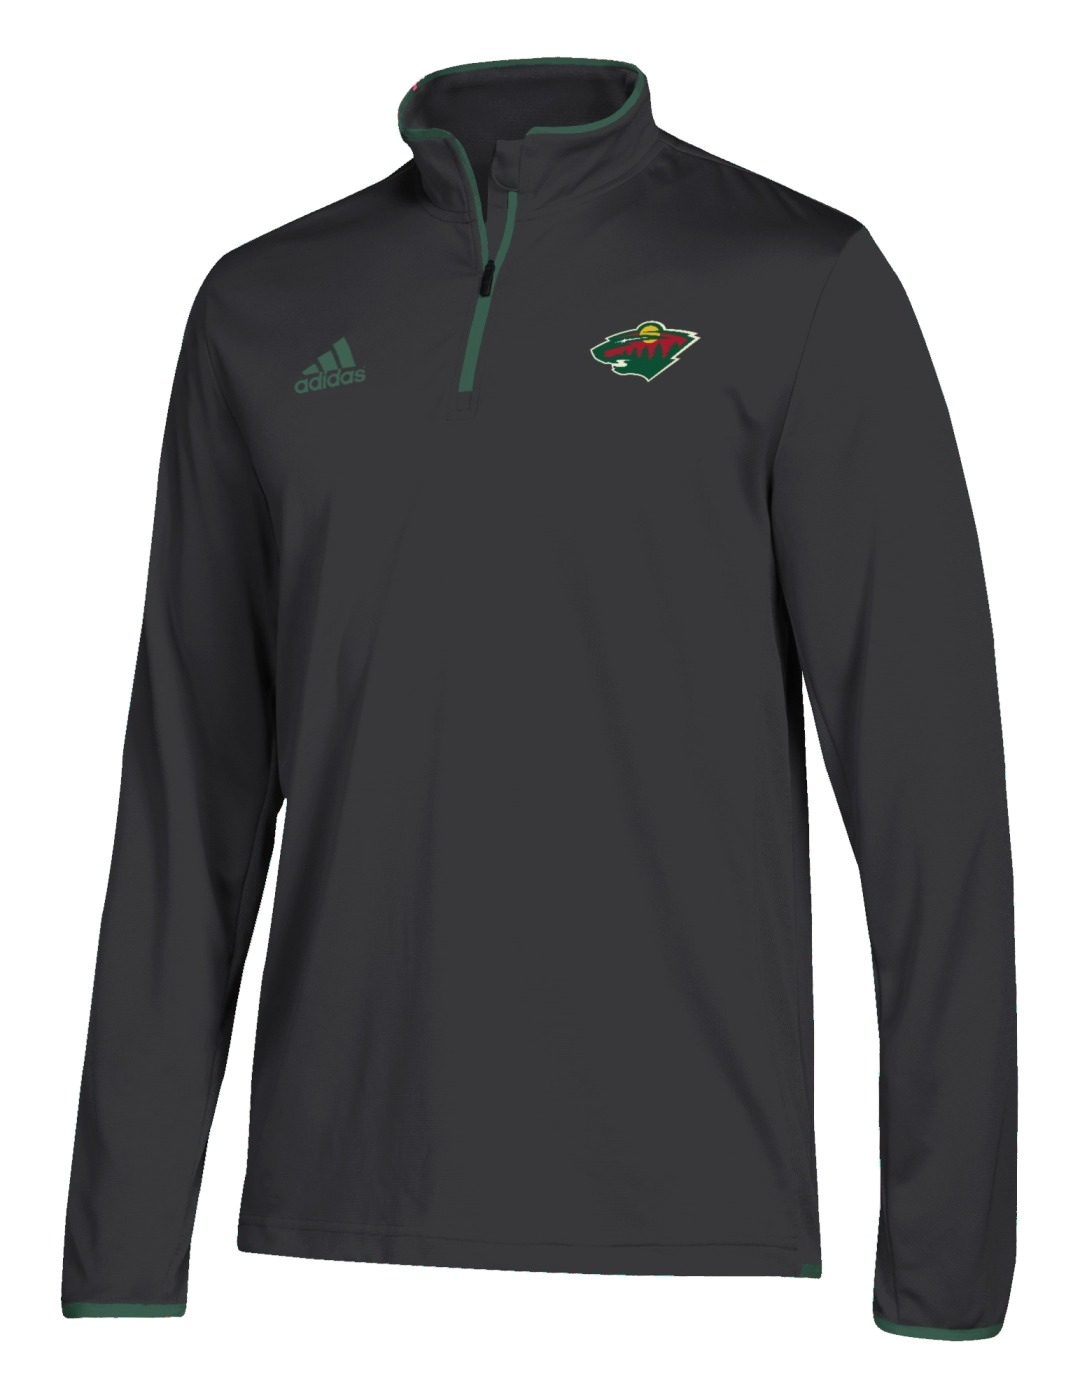 Minnesota Wild Adidas NHL Men's 2018 Authentic Pro 1/4 Zip Wind Shirt